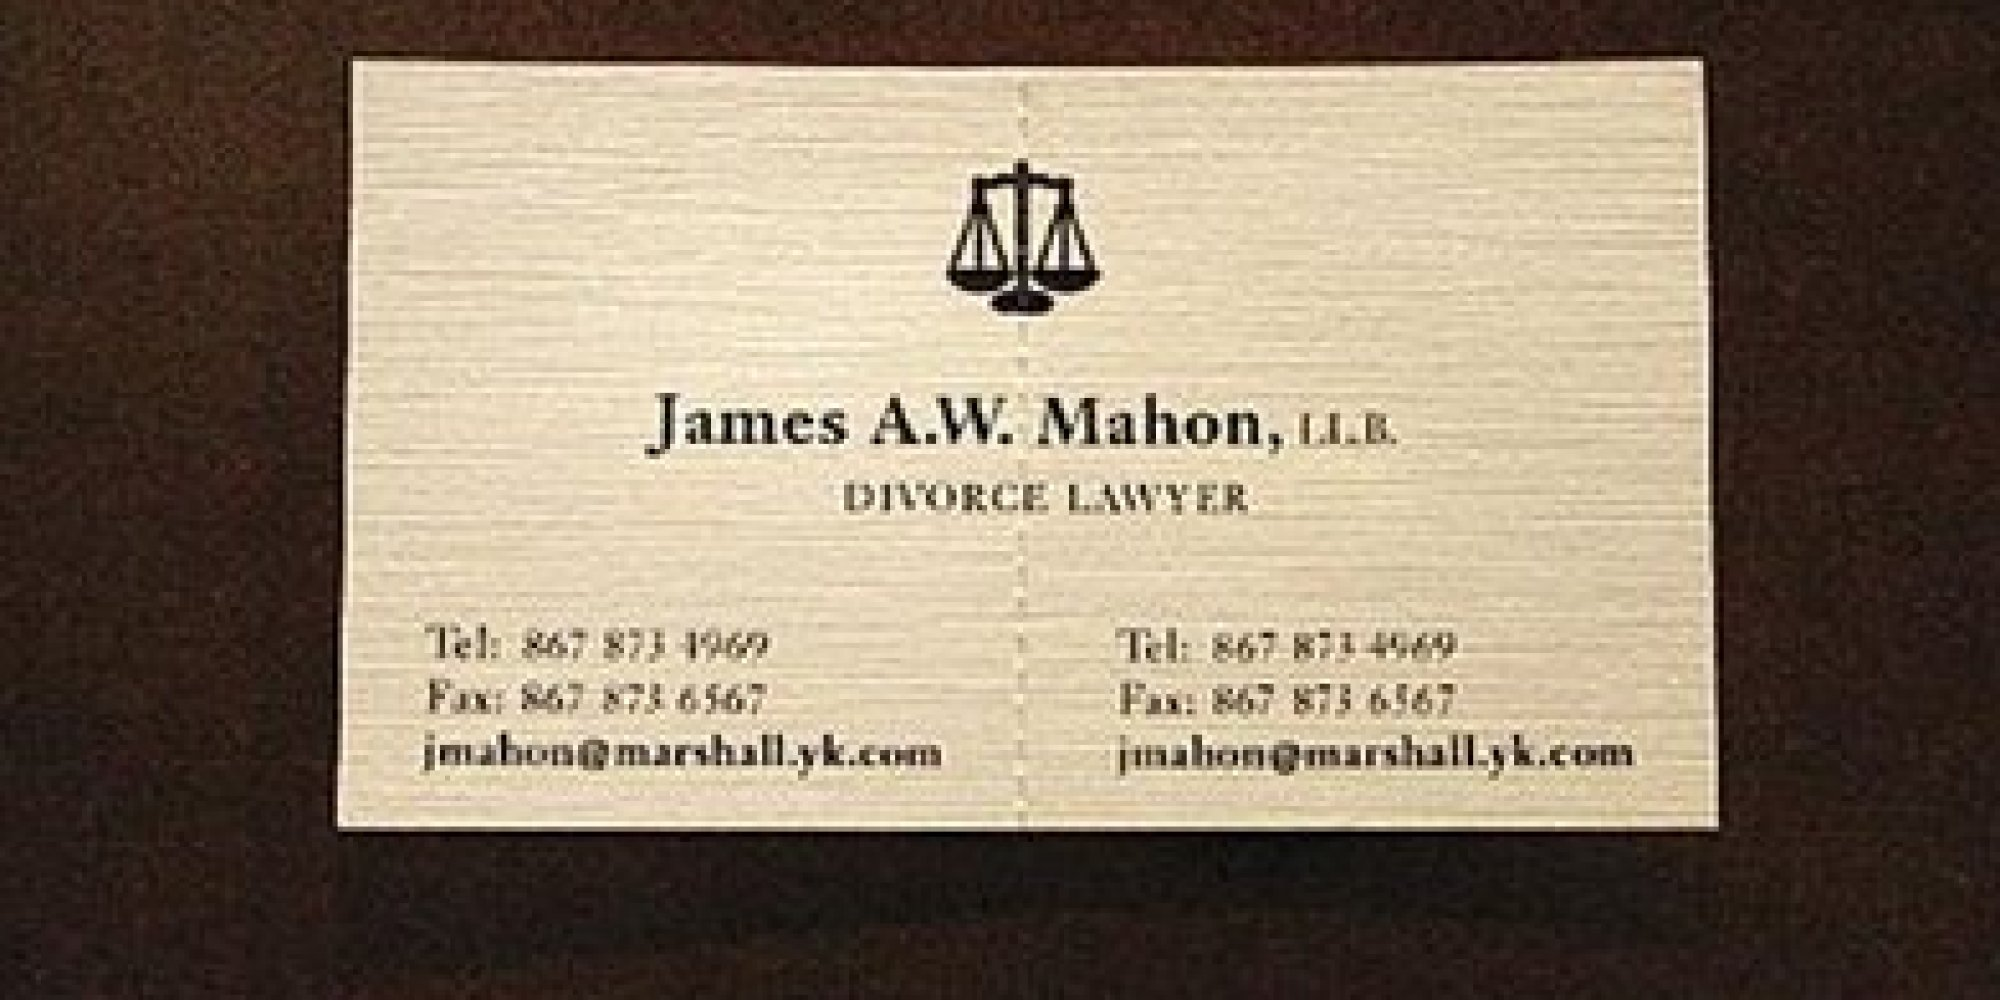 Divorce Attorney s Business Card Is Not What It Seems